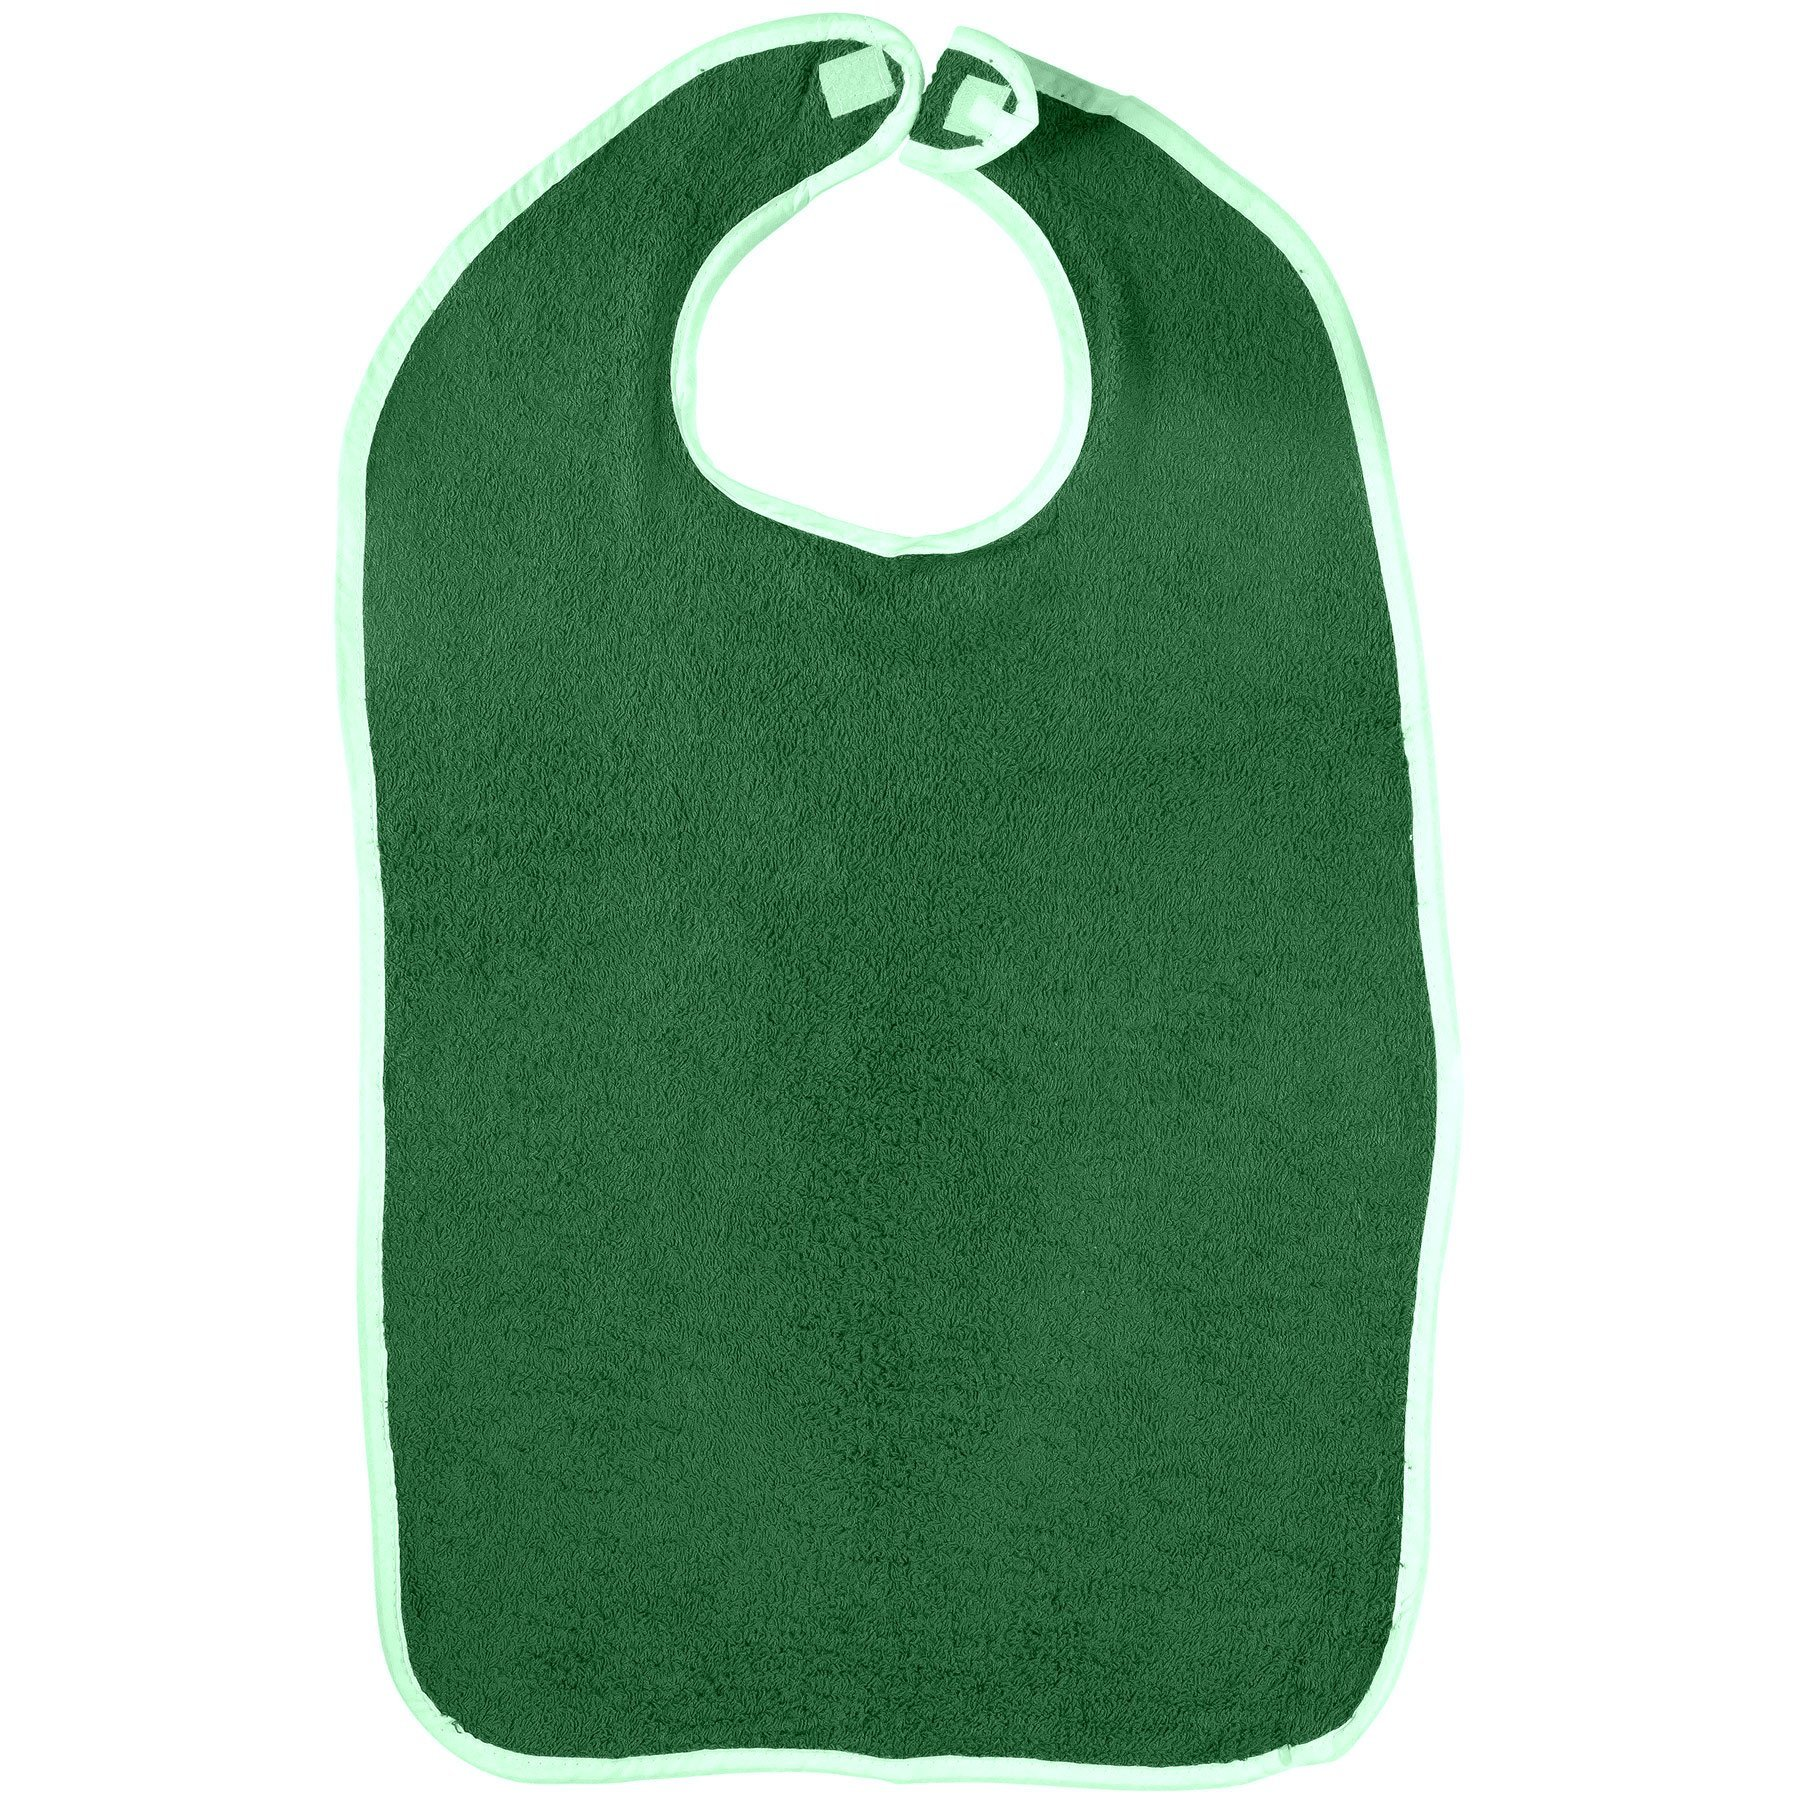 6-Pack Adult Terry Bibs- Extra Thick, Double Ply Absorbent with Hook and Loop Closure (Aqua Green)